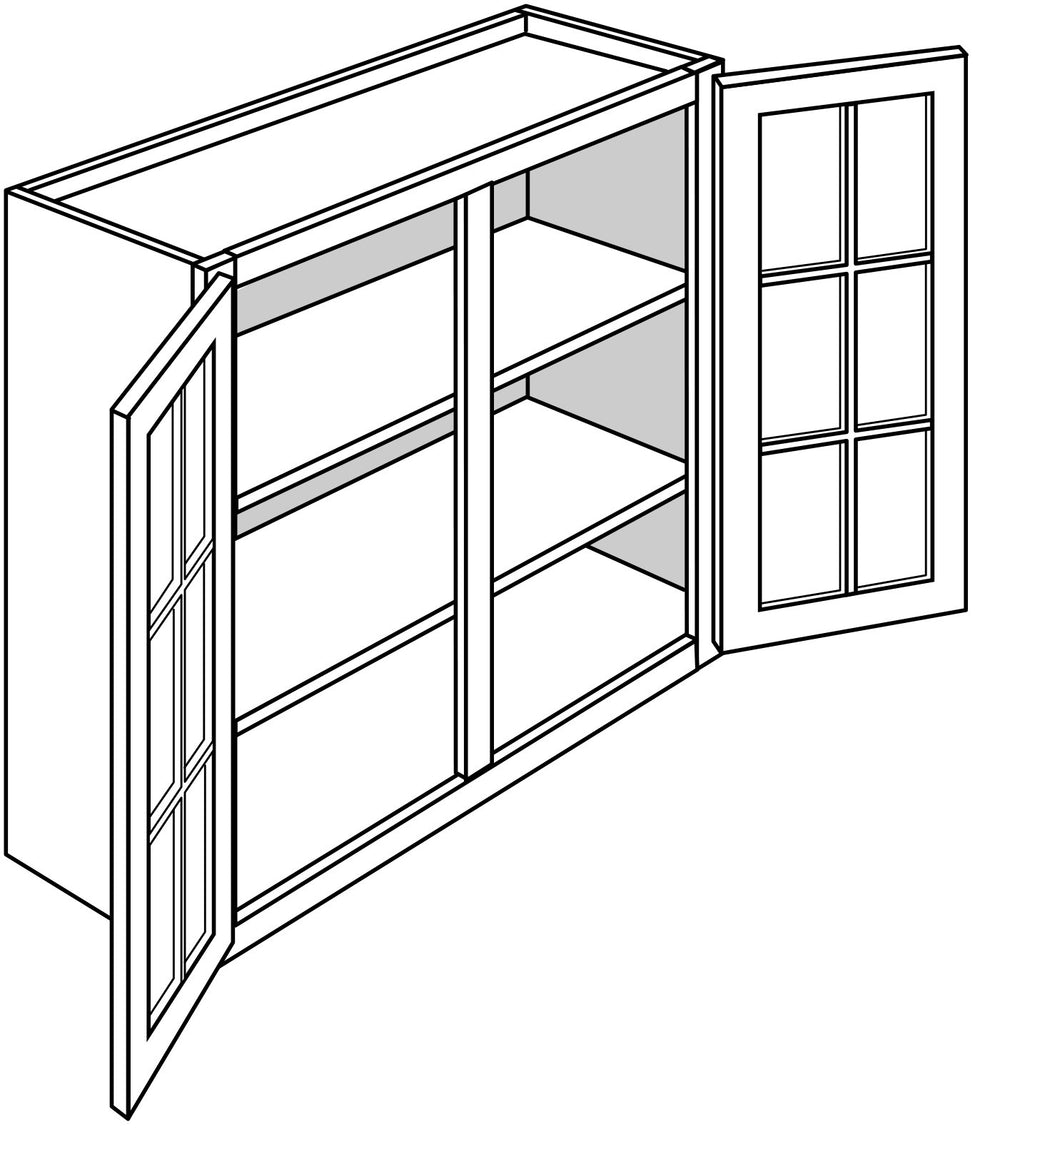 TRENTON WALL CABINETS WITH GLASS DOORS: 30